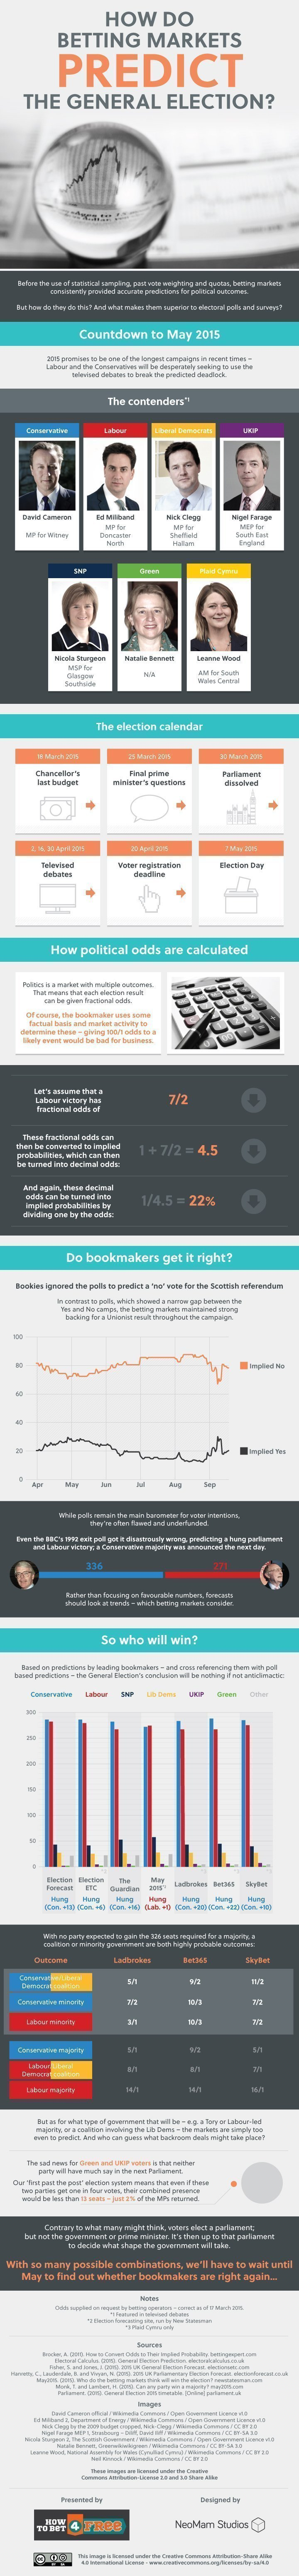 How do betting markets predict the General Election?